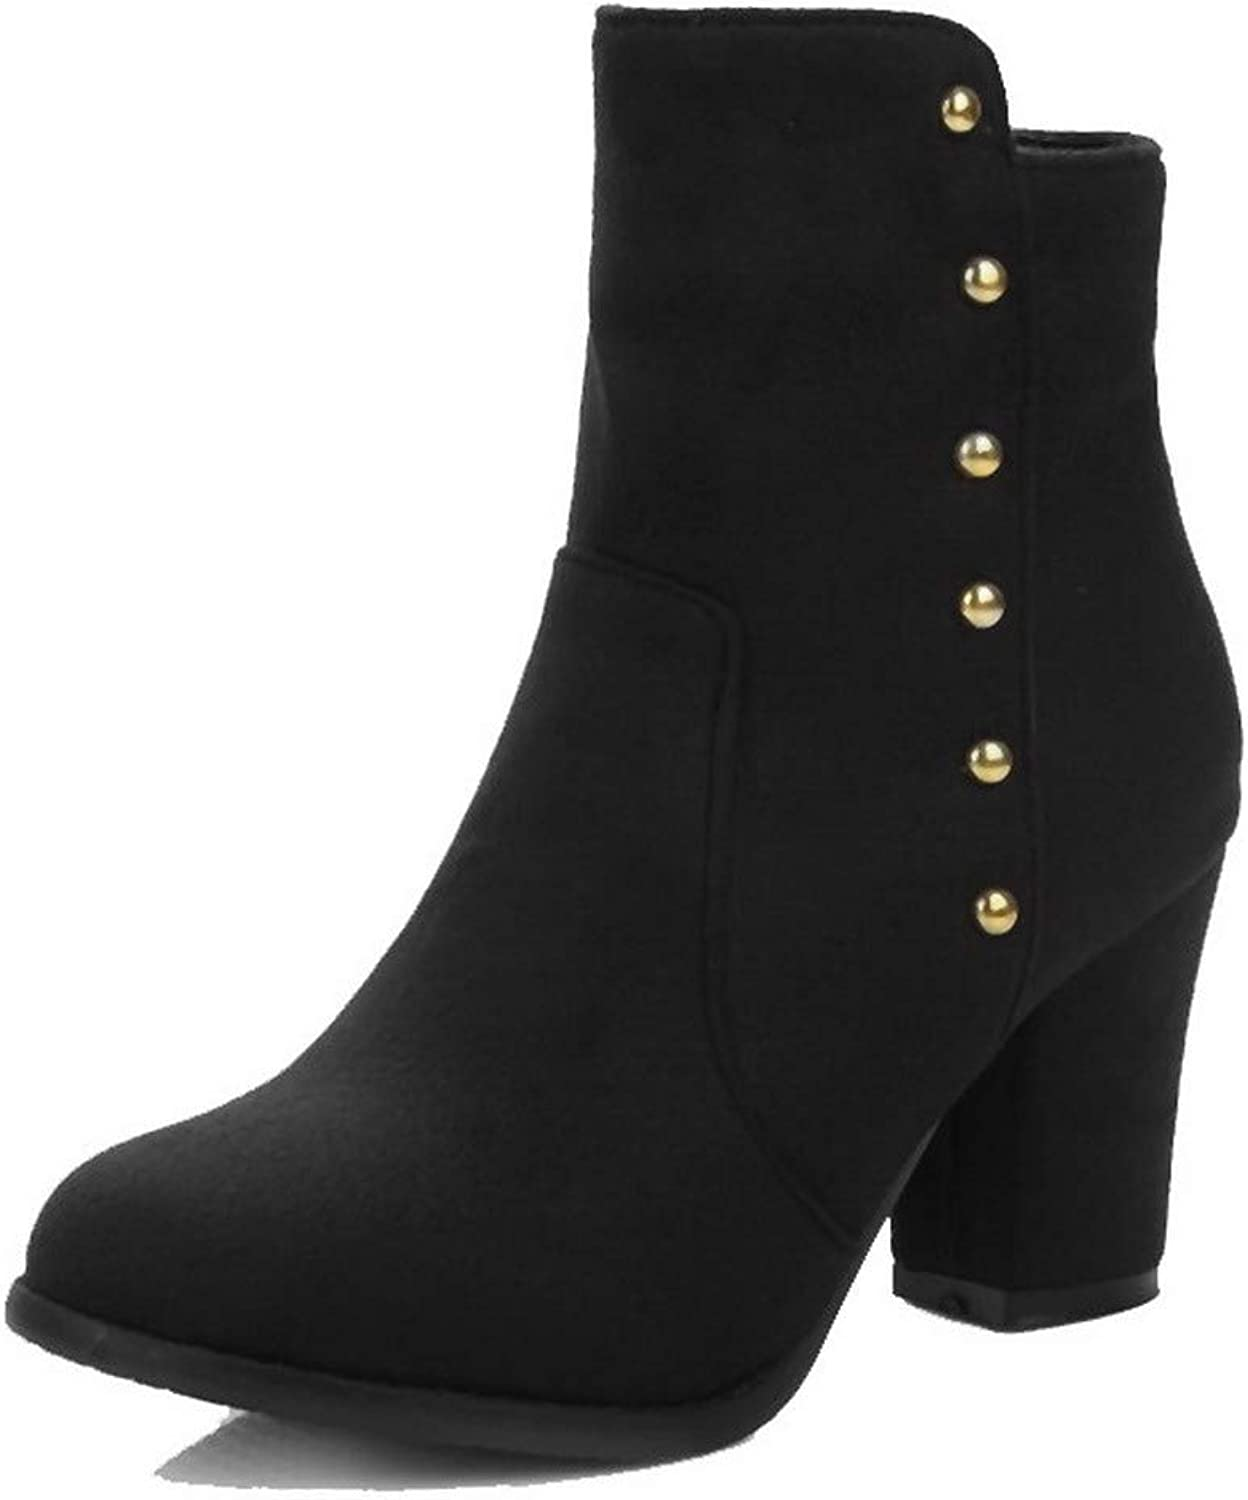 AllhqFashion Women's Zipper High-Heels Imitated Suede Solid Ankle-High Boots, FBUXD121591